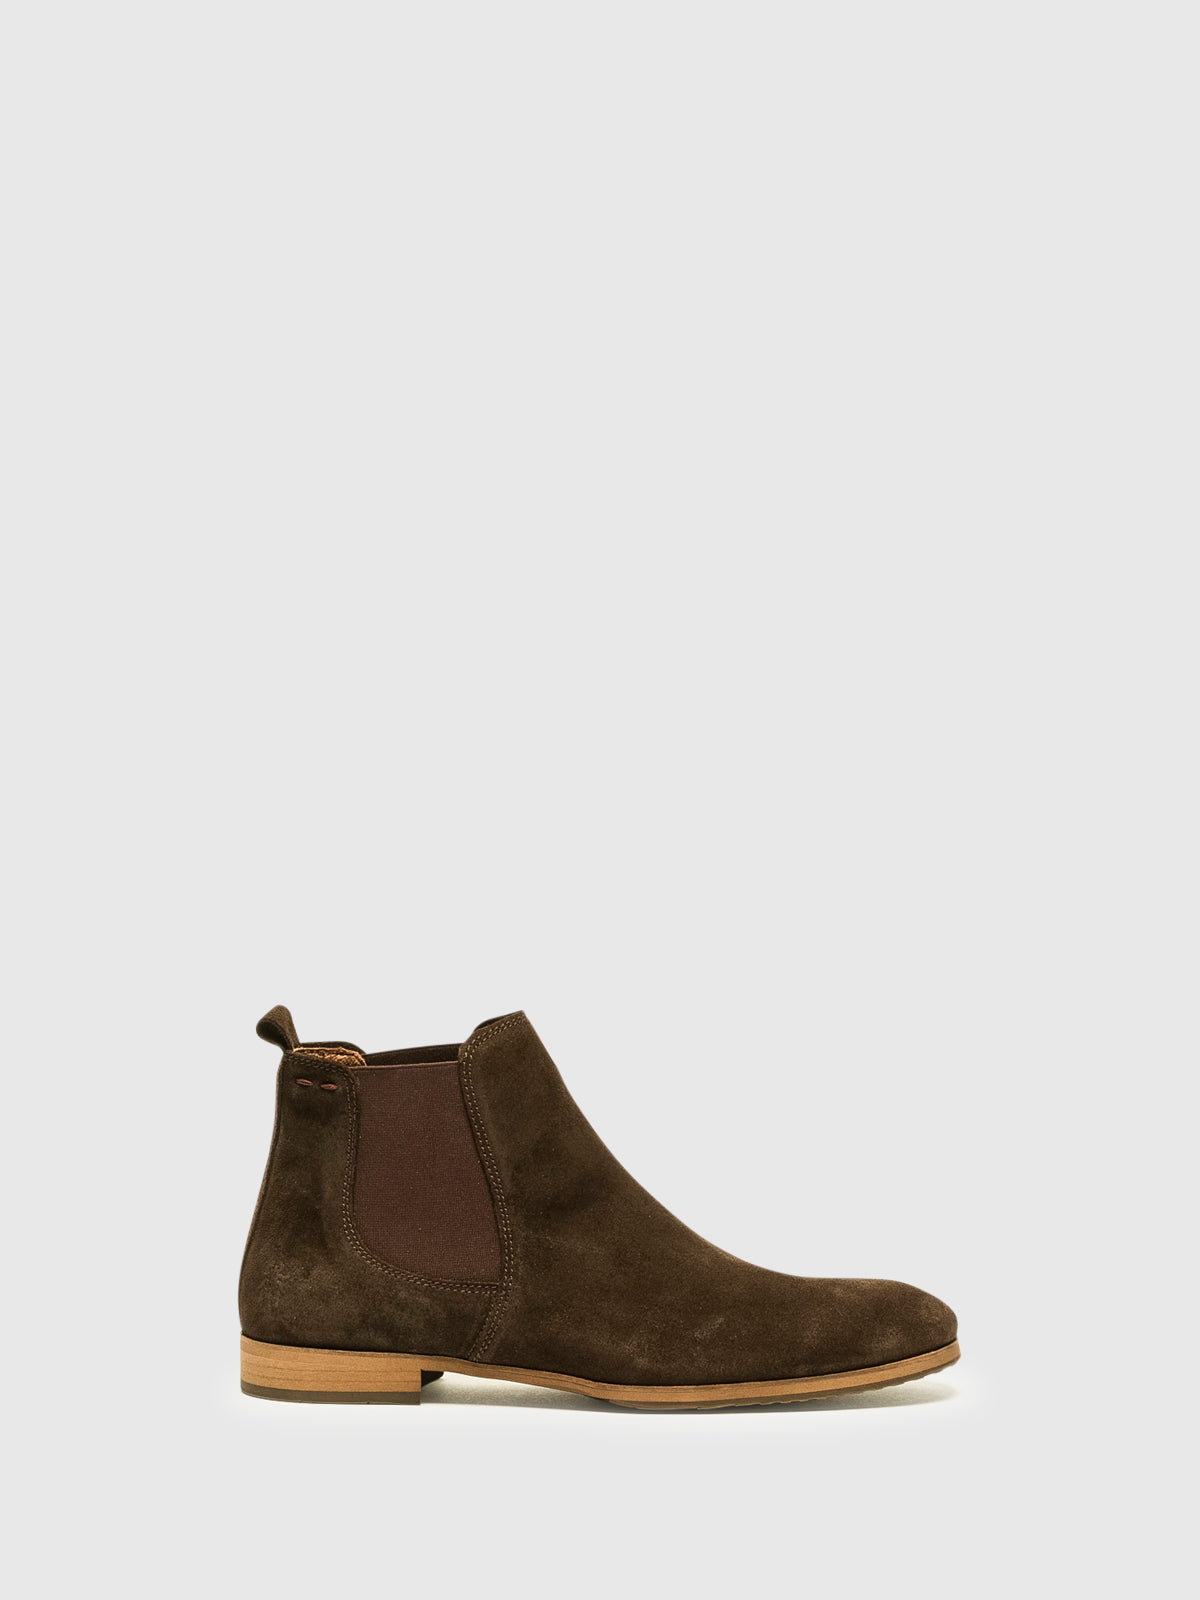 Fly London Brown Chelsea Ankle Boots